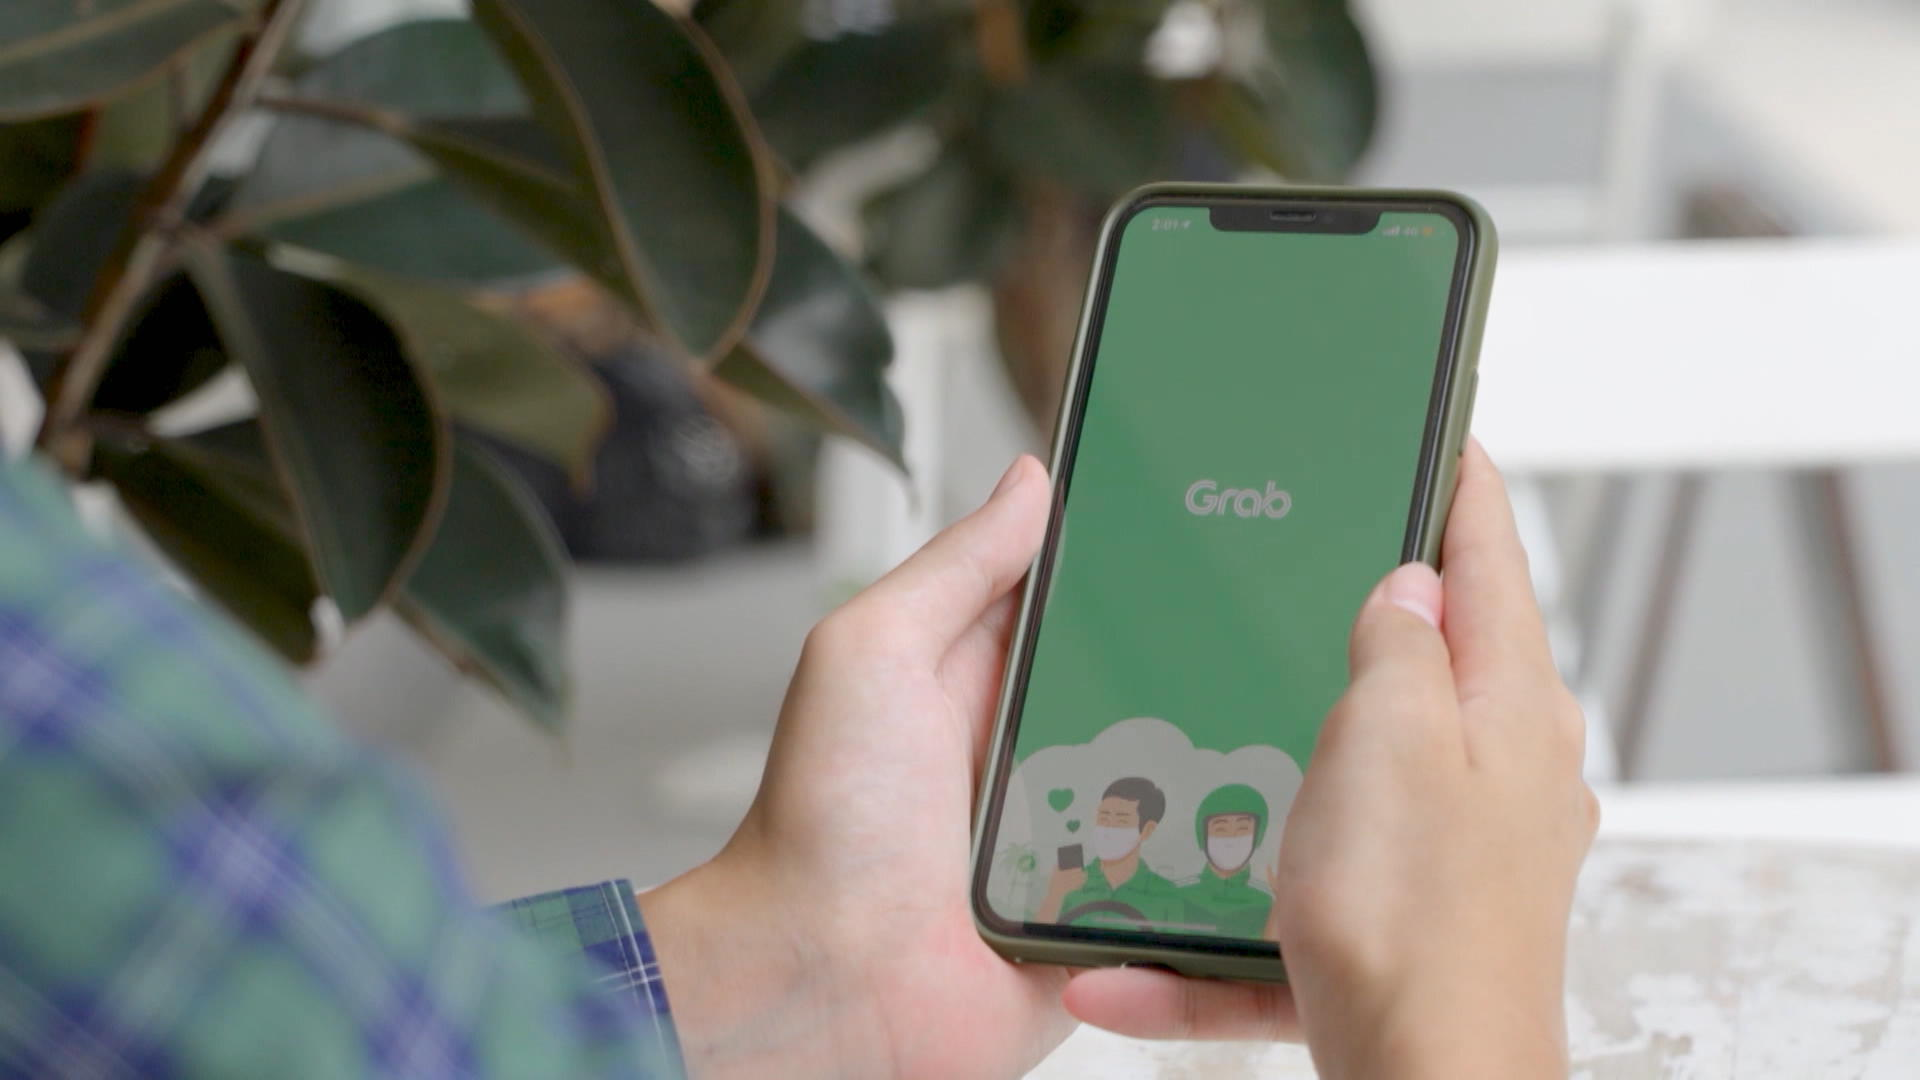 Grab CEO Confident SPAC Deal to Close by Year-End After Delay